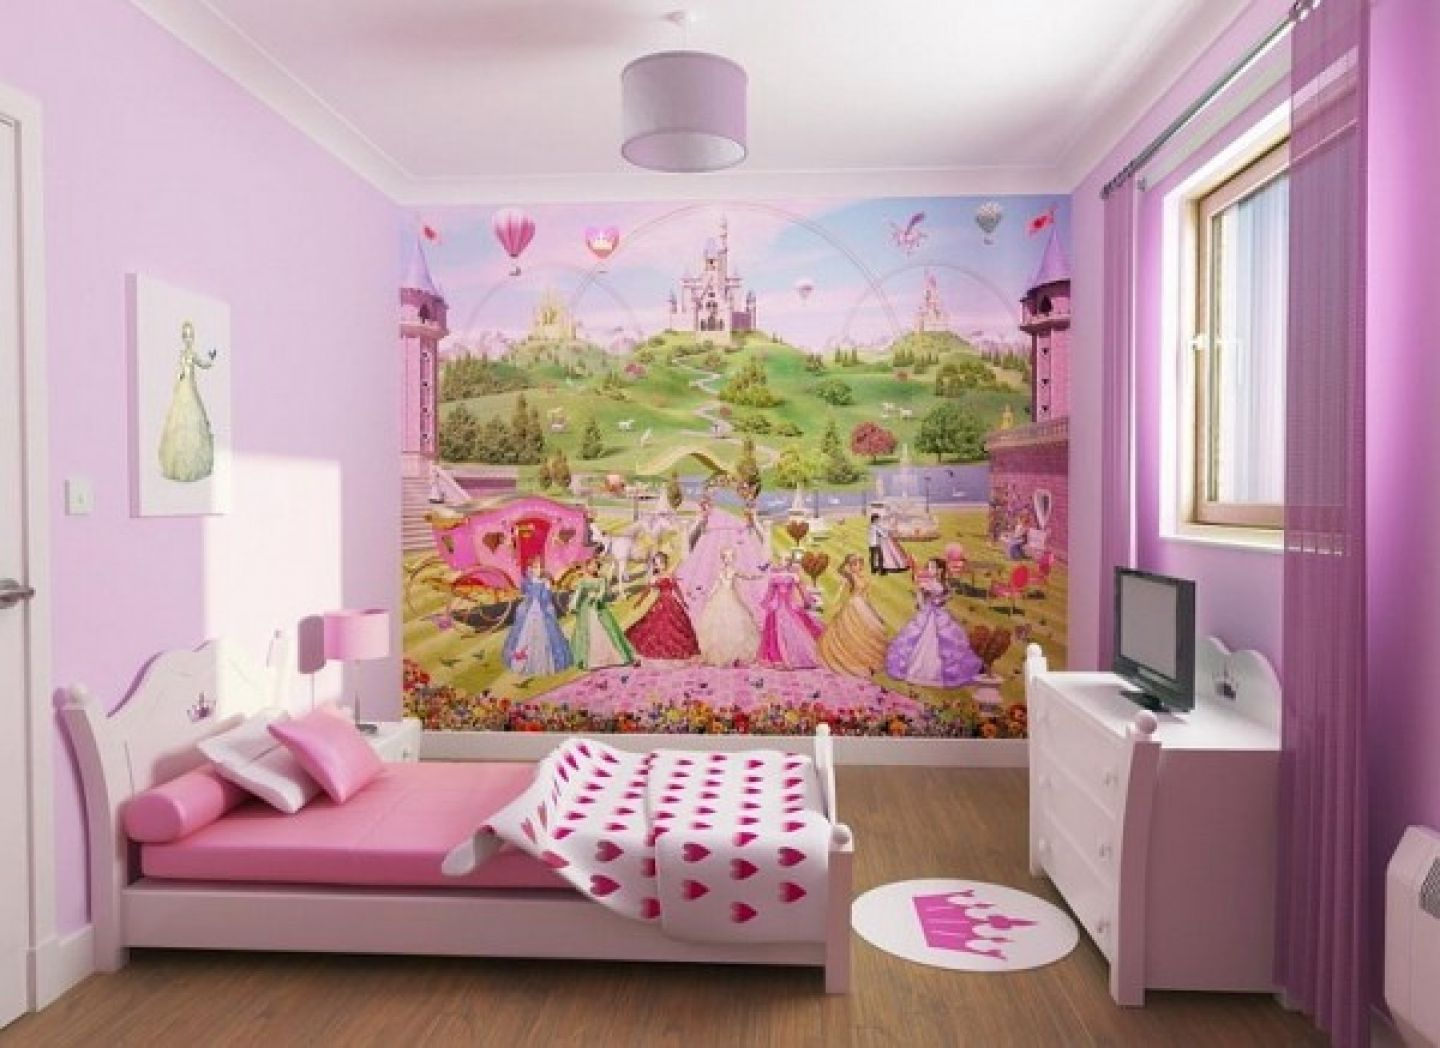 Girls Bedroom Decorating Ideas Stunning Girls' Bedroom Style  Bedrooms Small Bedroom Decorating And Room Decorating Inspiration